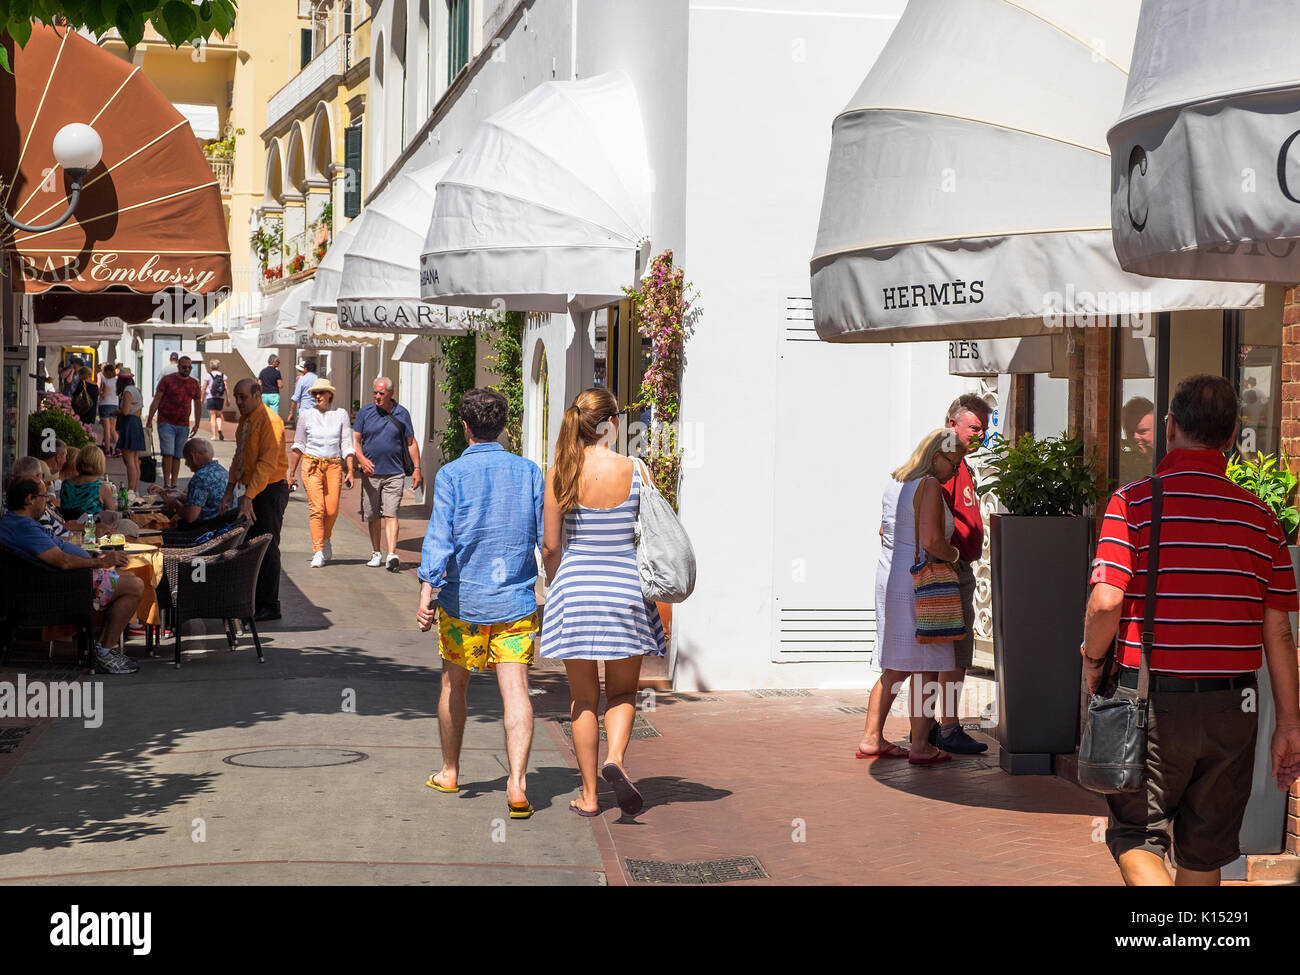 visitors and tourists admire the designer boutiques on the island of capri, italy - Stock Image